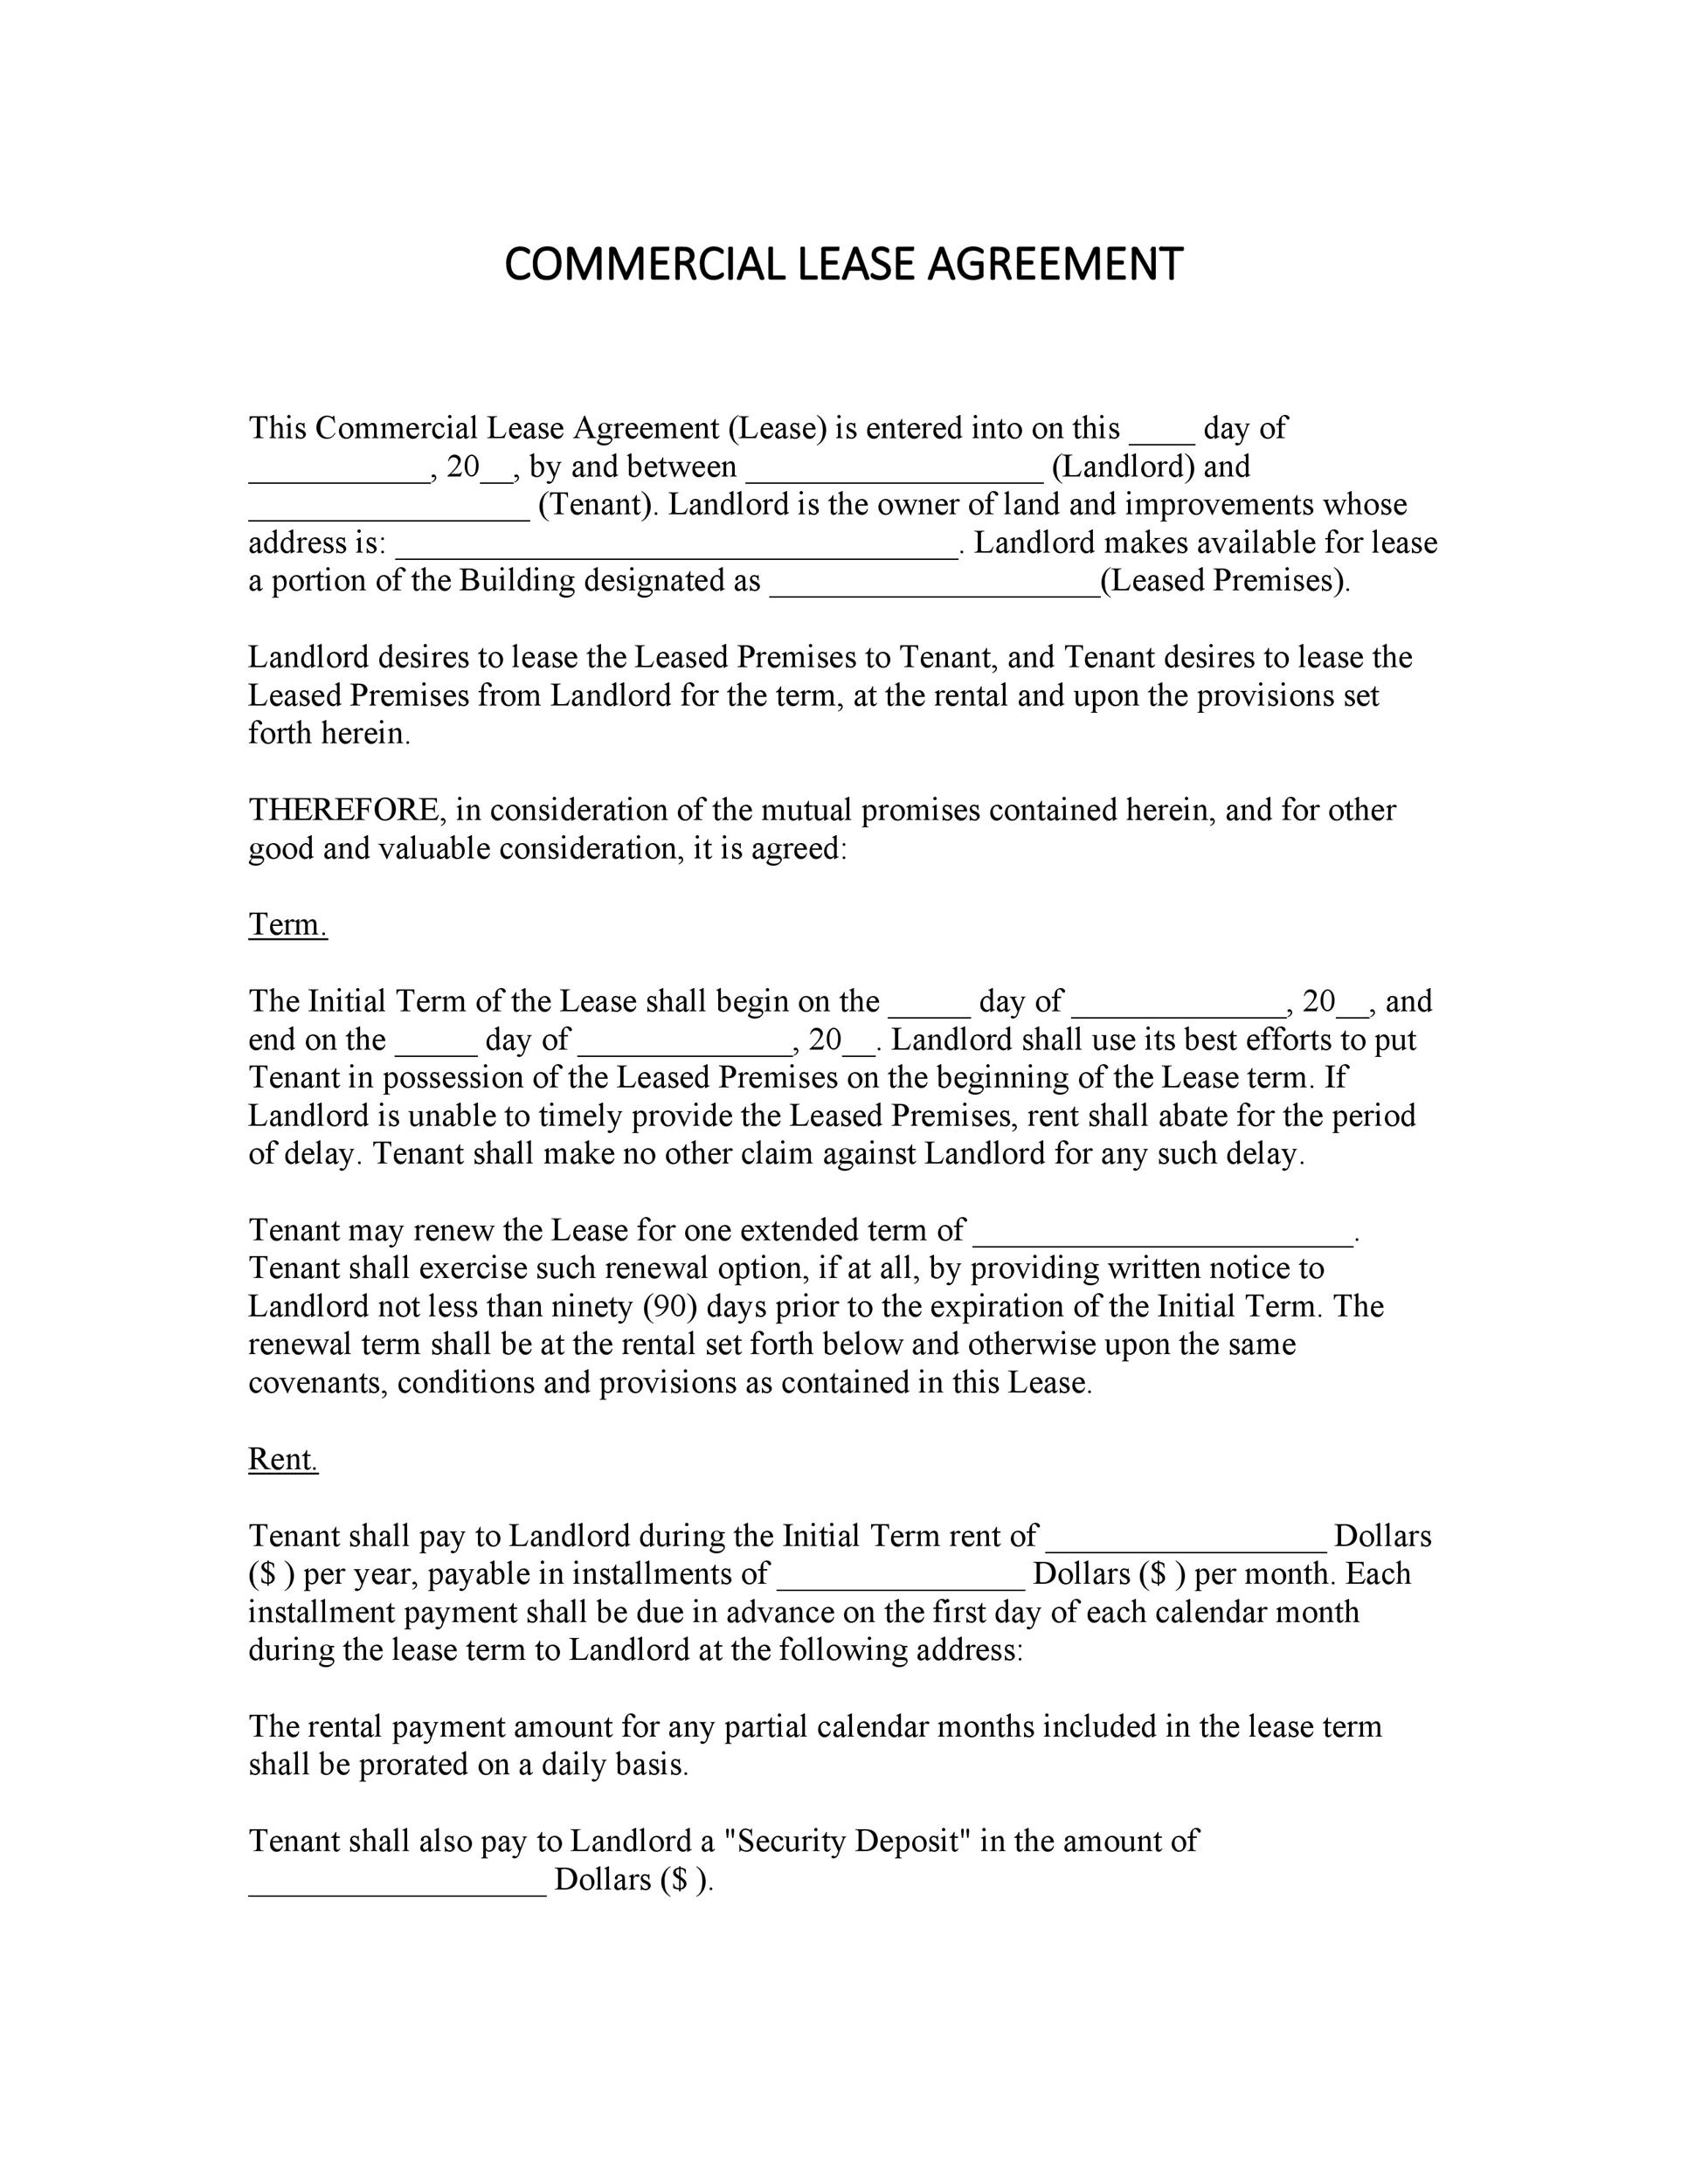 Sample Commercial Security Agreement Template Commercial Lease